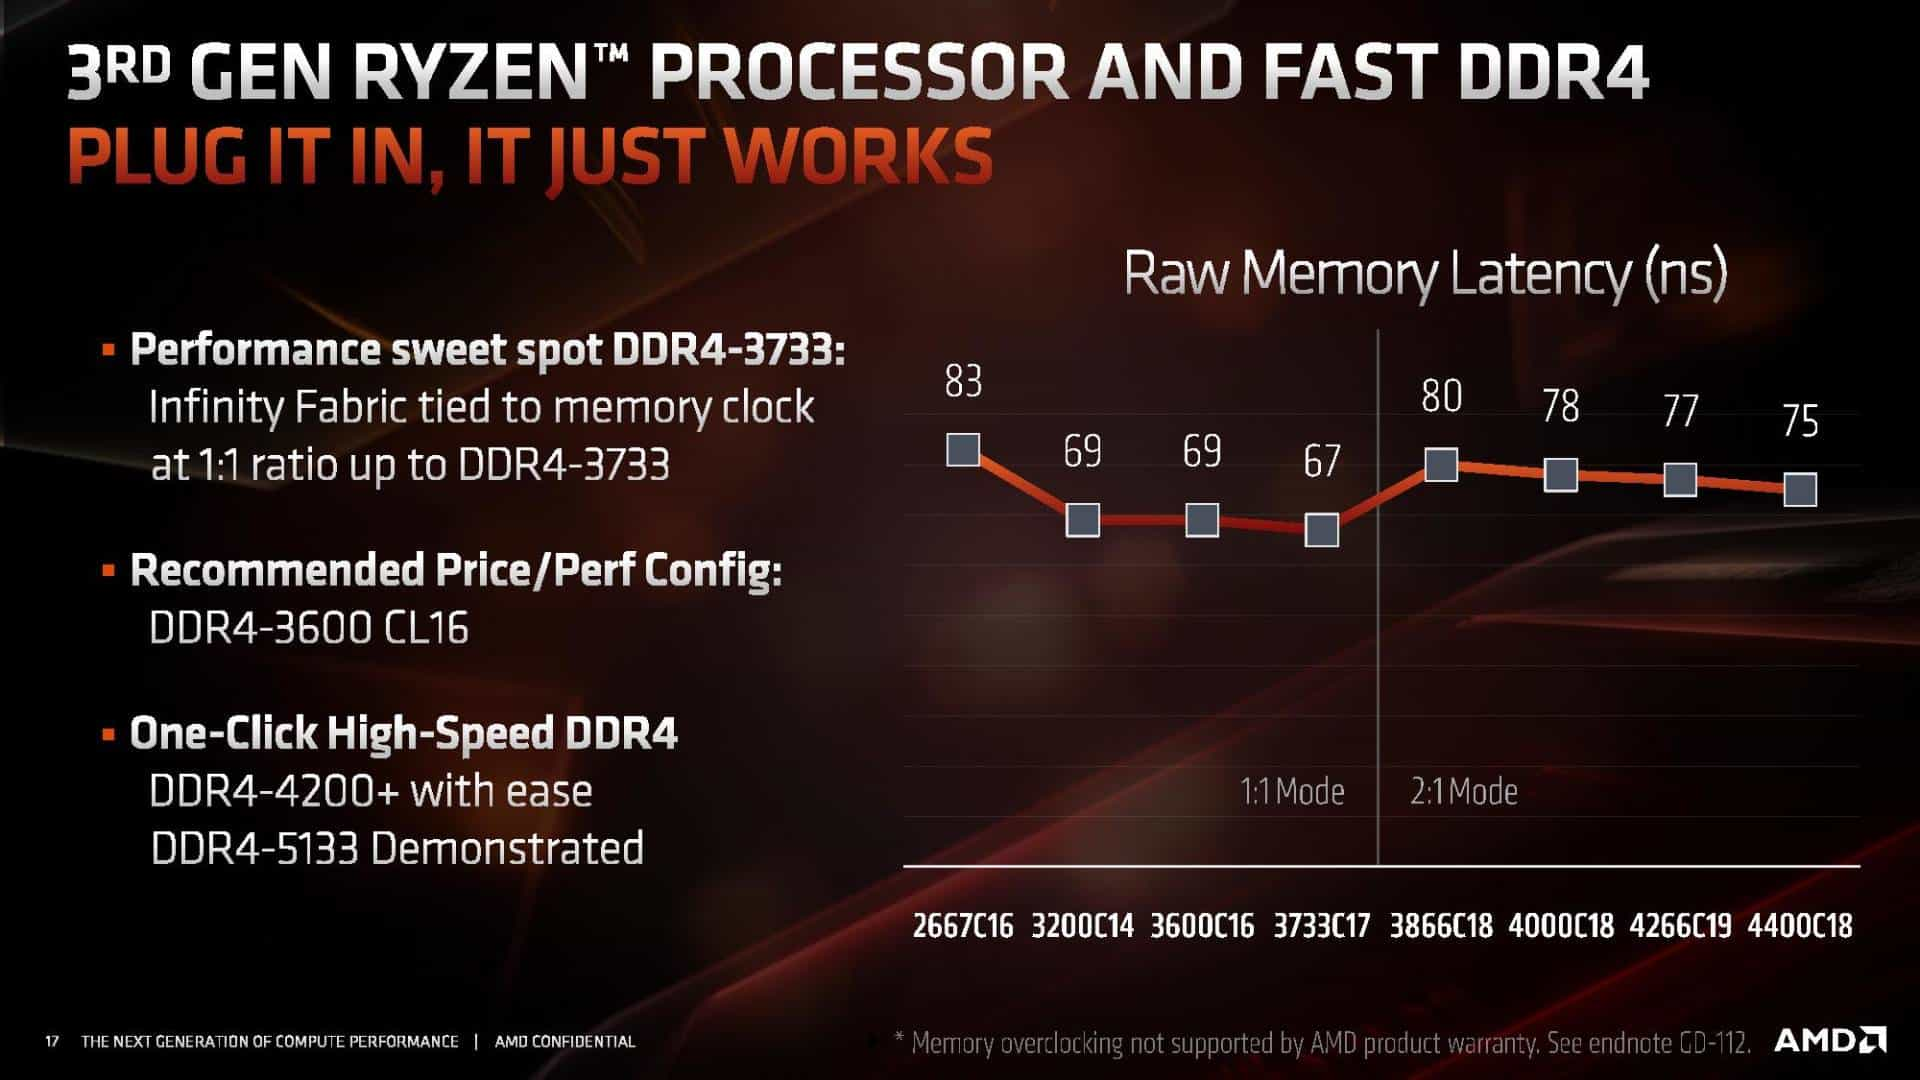 3rd Gen Ryzen Memory Latency Sweet Spot